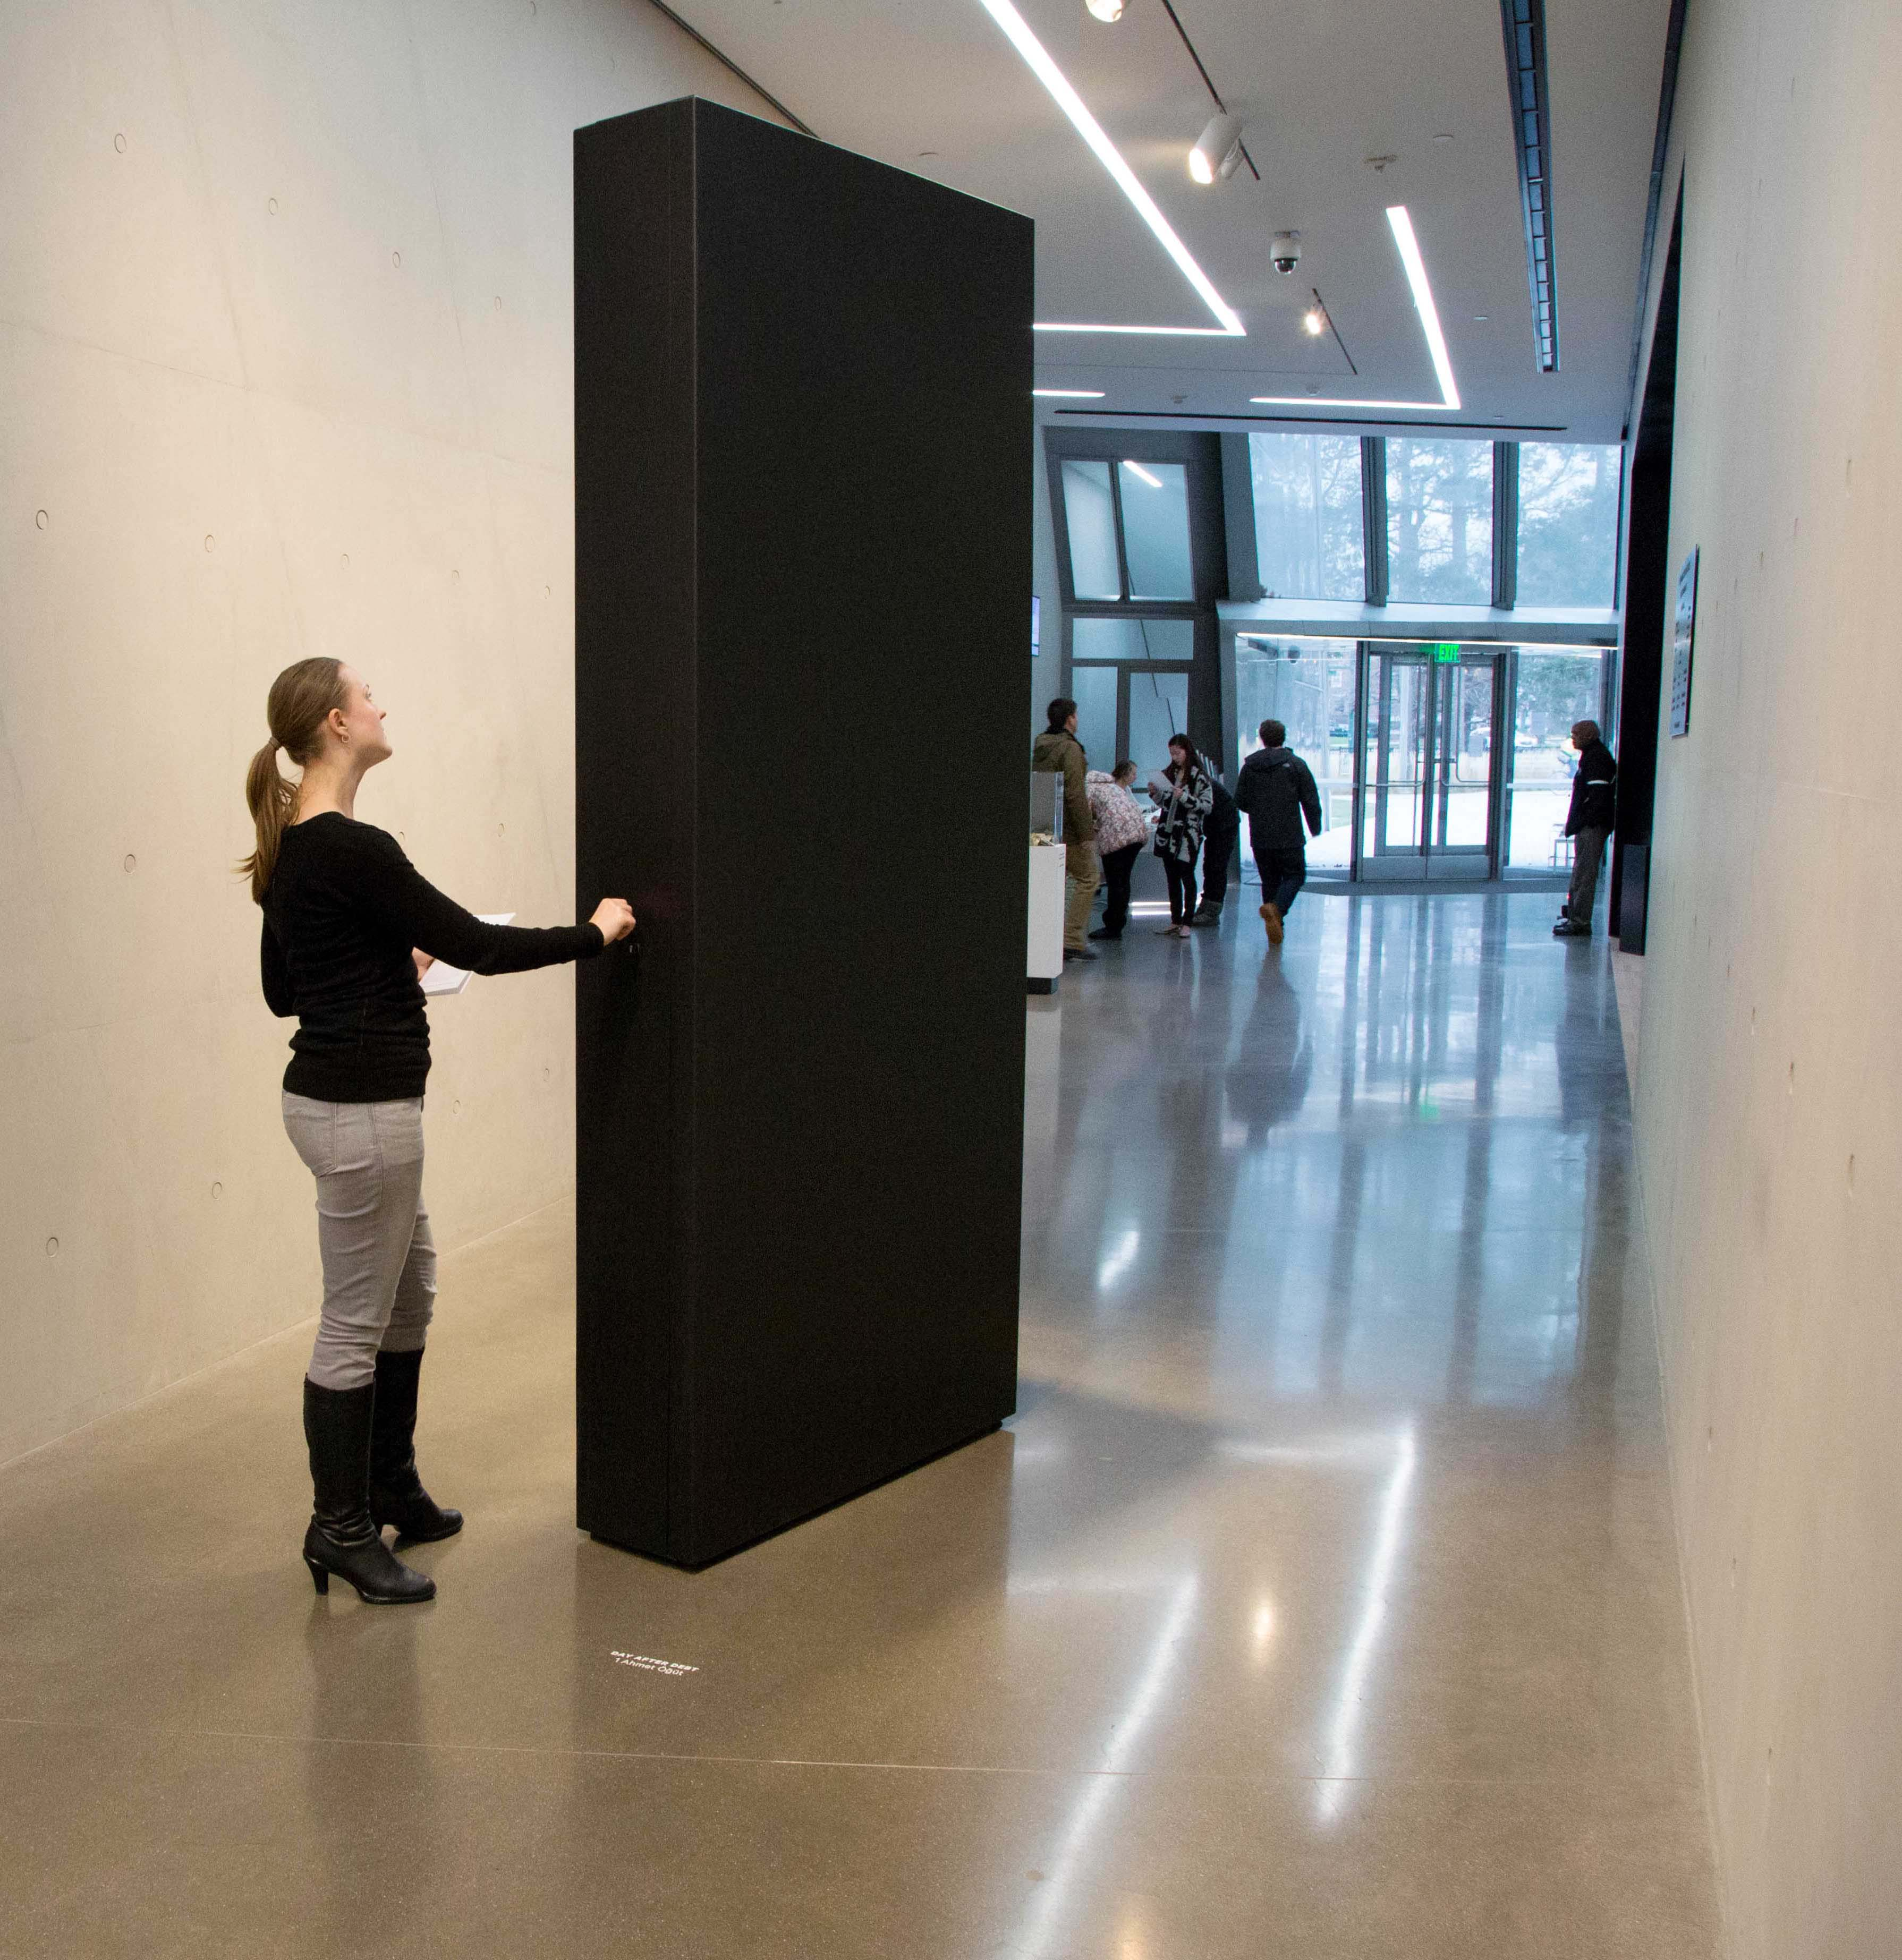 Ahmet Öğüt, Anti-Debt Monolith, 2014. Part of Day After Debt (US), 2015 In collaboration with Debt Collective/Strike Debt/Rolling Jubilee. Commissioned by the Eli and Edythe Broad Art Museum at Michigan State University and Protocinema. © Ahmet Öğüt 2015, © Aaron Word Photography 2014